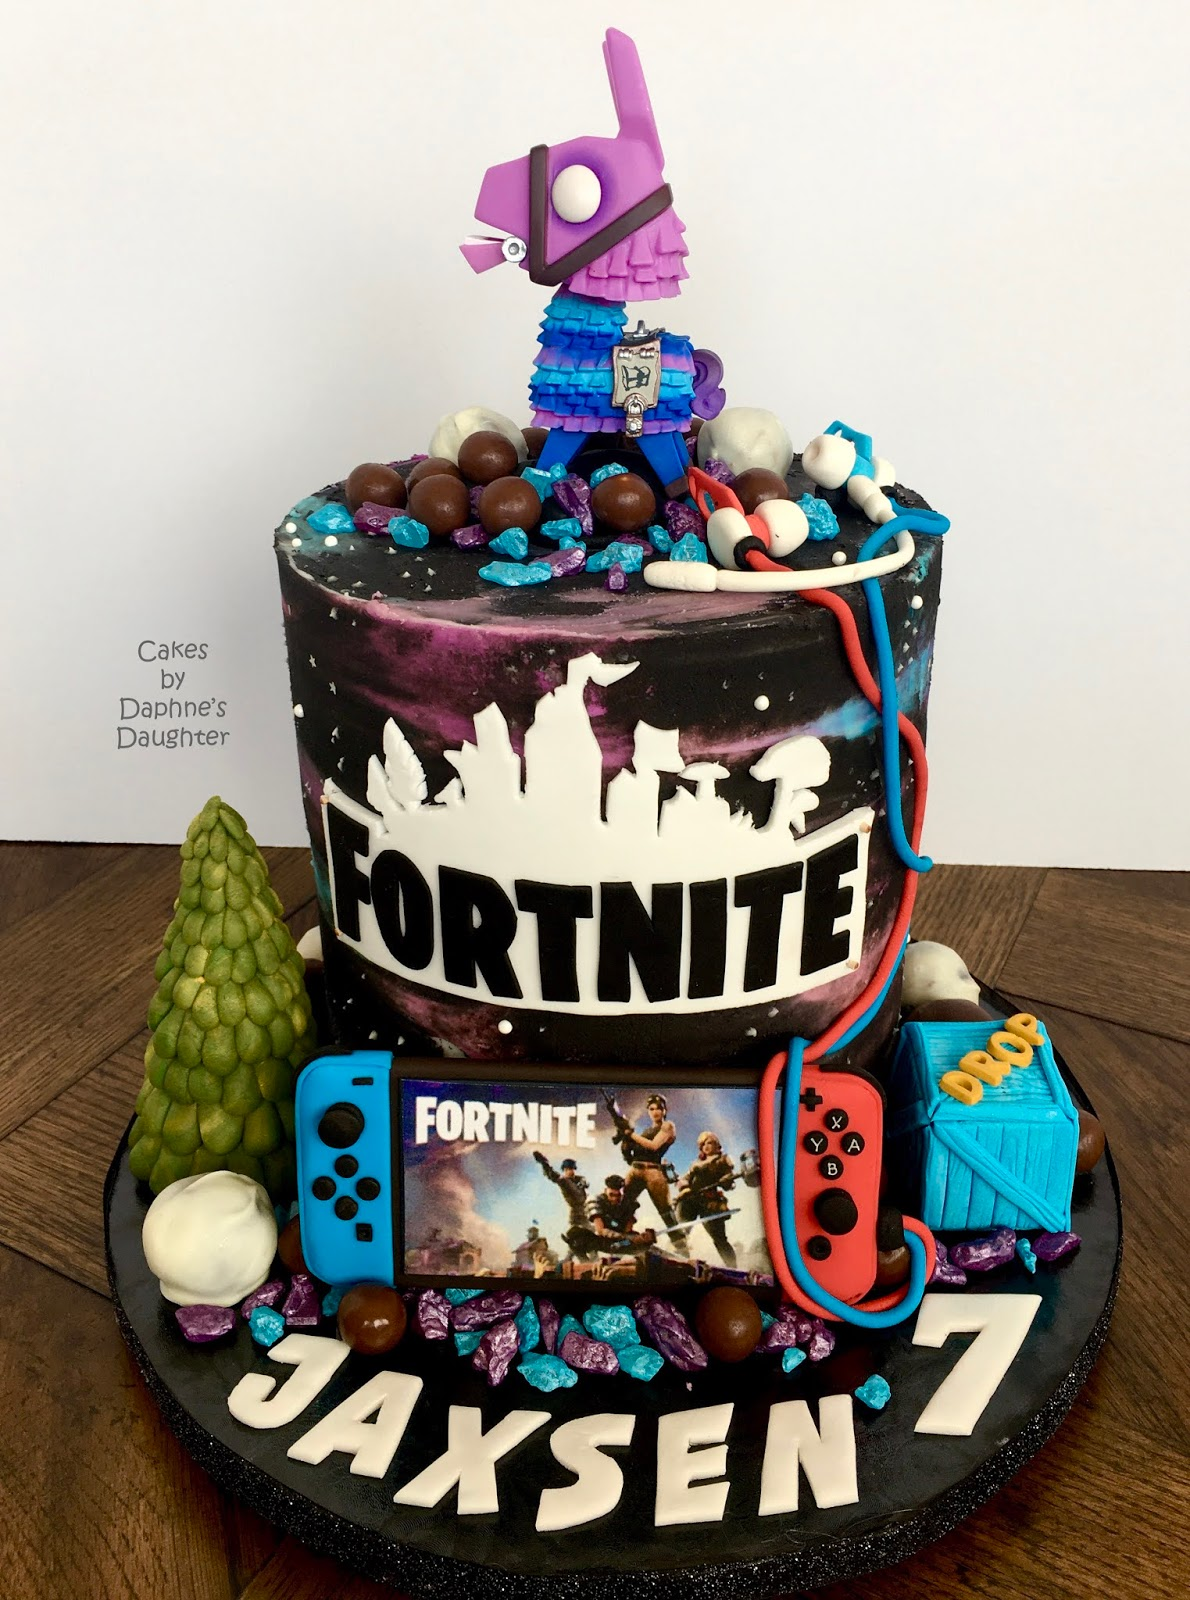 The Bake More Galaxy Fortnite Cake With Loot Llama And Switch Controller It's fortnite's third birthday, and the game has changed pretty drastically from its first birthday celebration. galaxy fortnite cake with loot llama